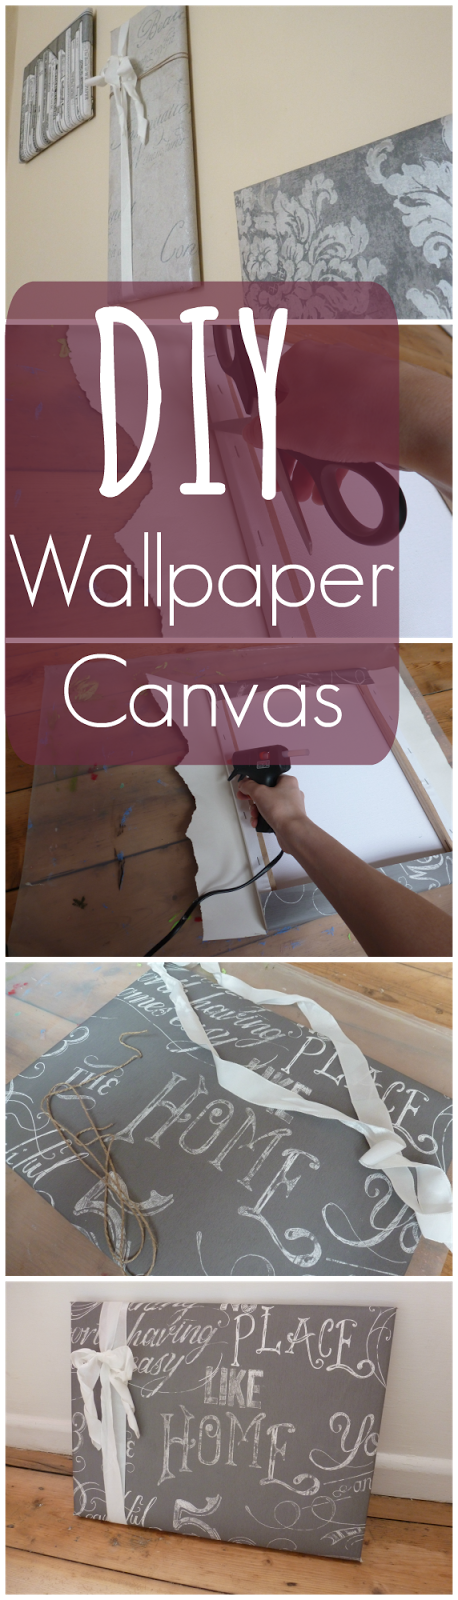 DIY Wallpaper Canvas Cover